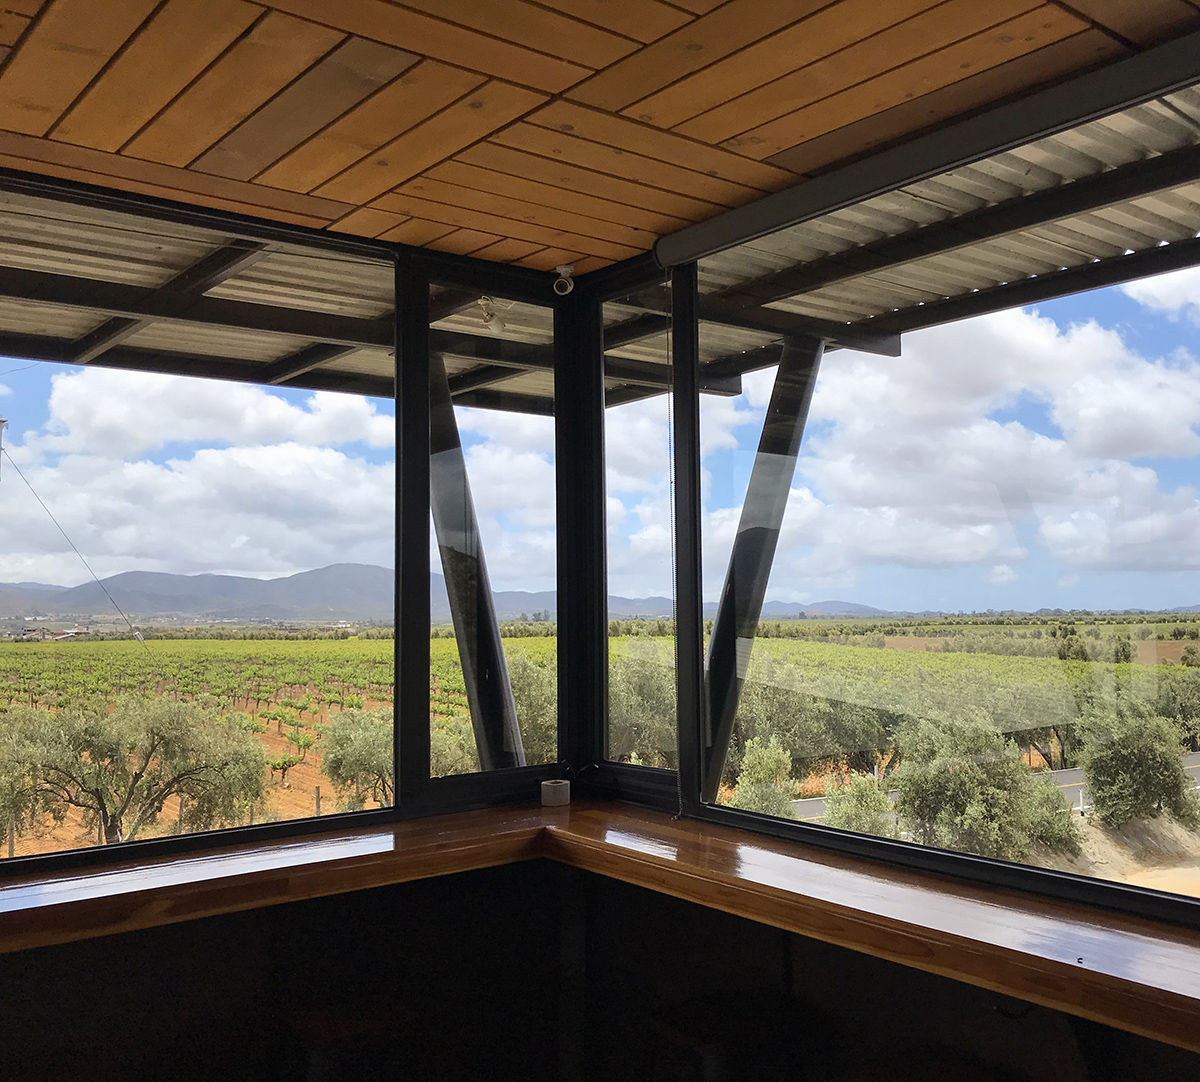 View of the mountains, vines, and utter beauty from the Torres Alegre tasting room.